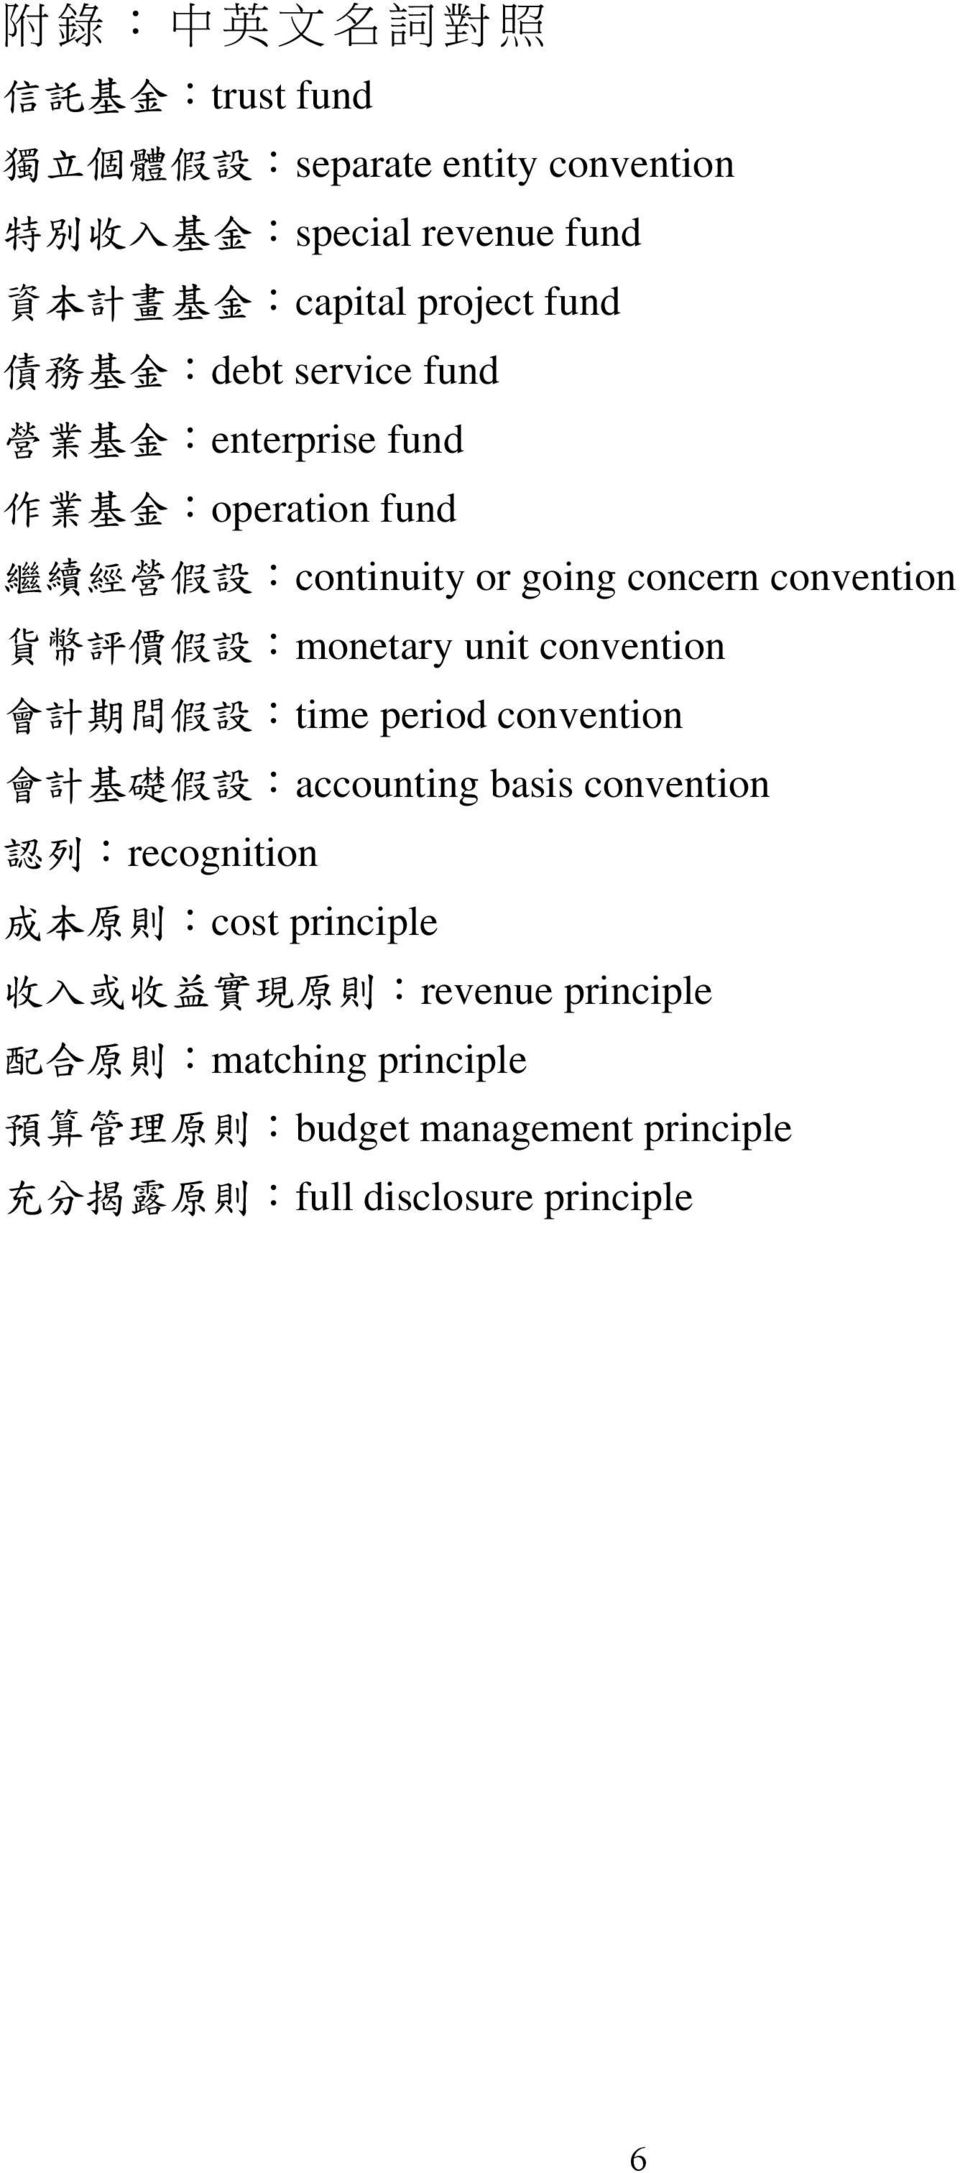 :monetary unit convention 會 計 期 間 假 設 :time period convention 會 計 基 礎 假 設 :accounting basis convention 認 列 :recognition 成 本 原 則 :cost principle